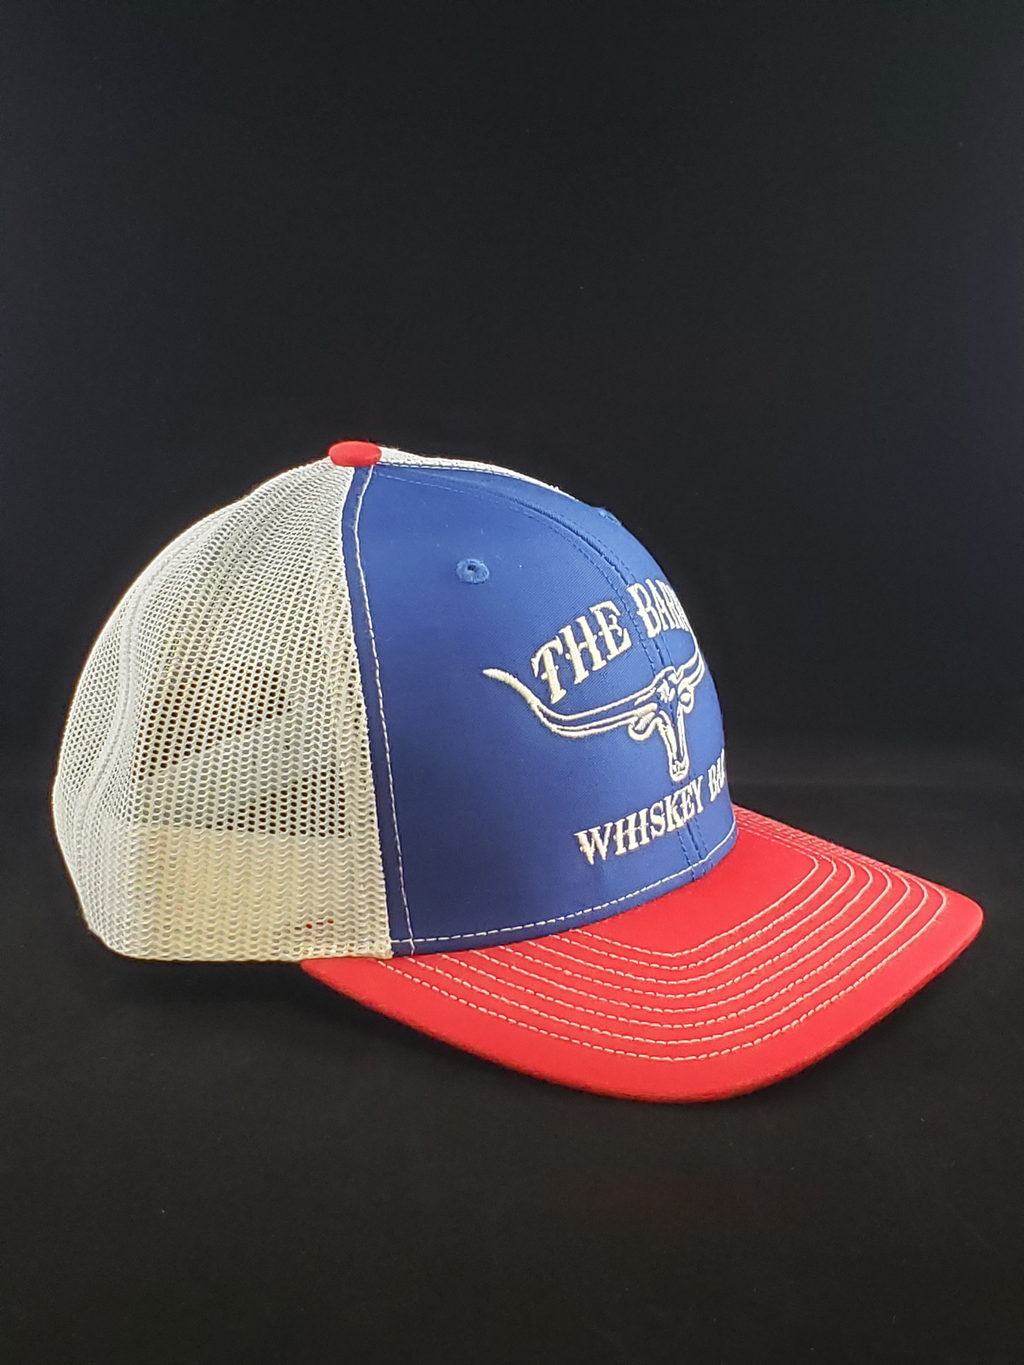 Blue/White/Red Cap